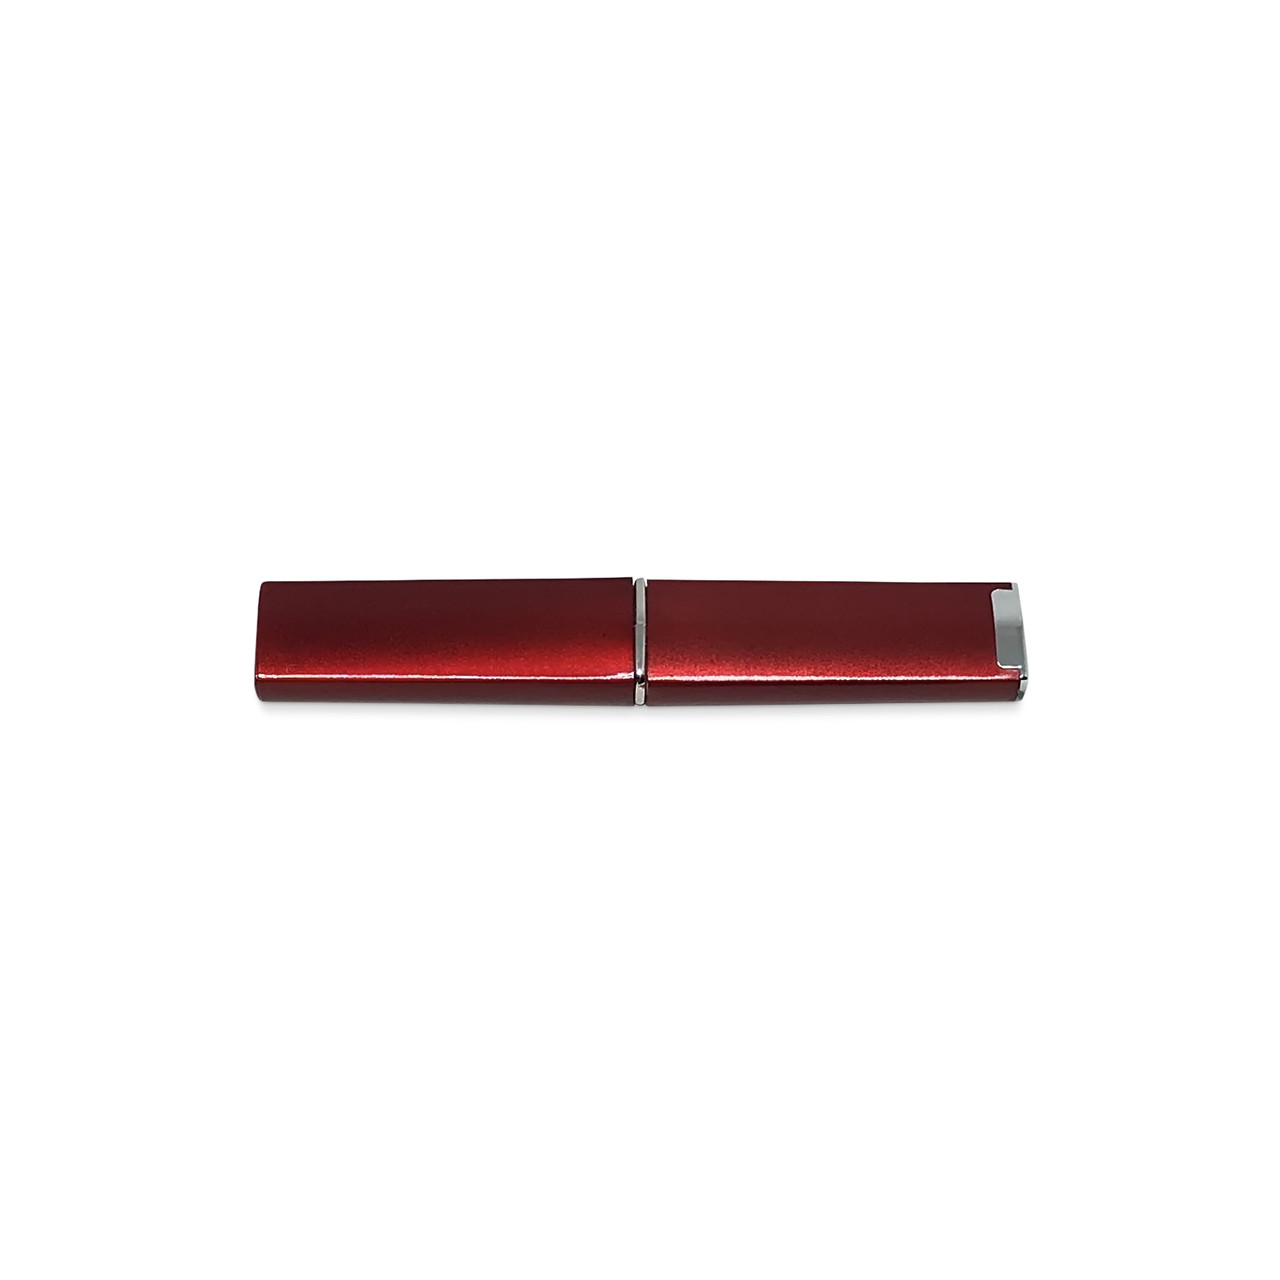 Nail File Case - Small